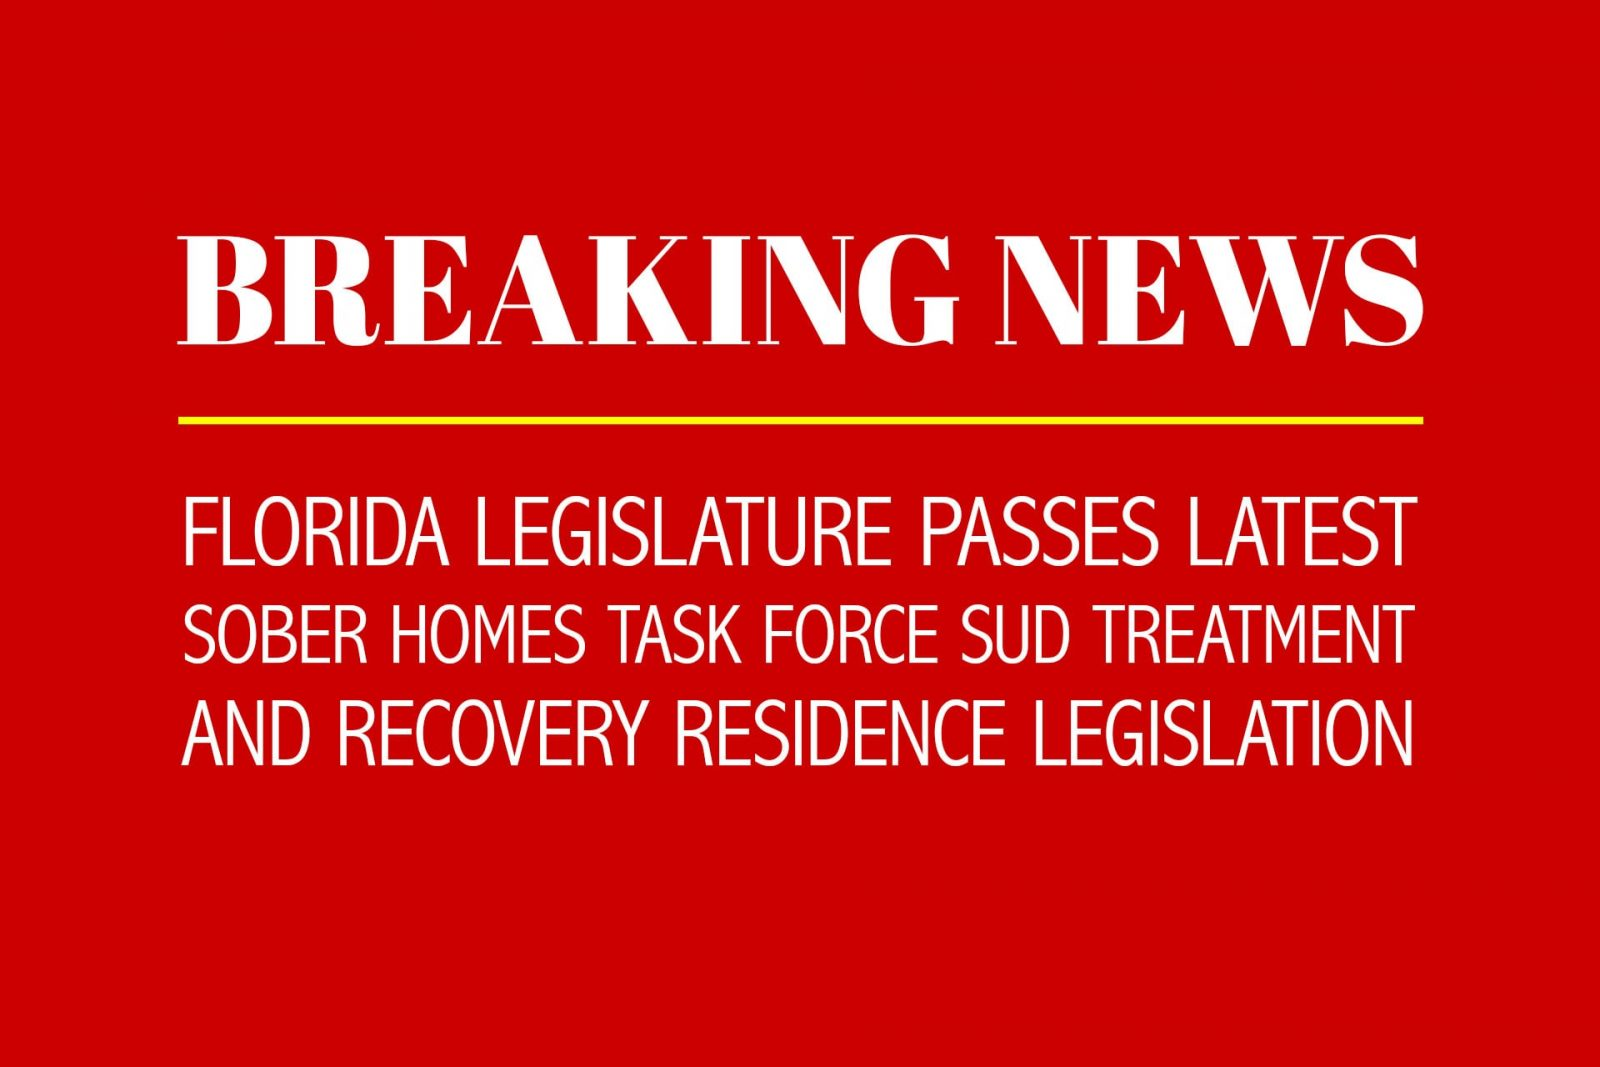 BREAKING NEWS – Florida Legislature Passes Latest Sober Homes Task Force SUD Treatment and Recovery Residence Legislation